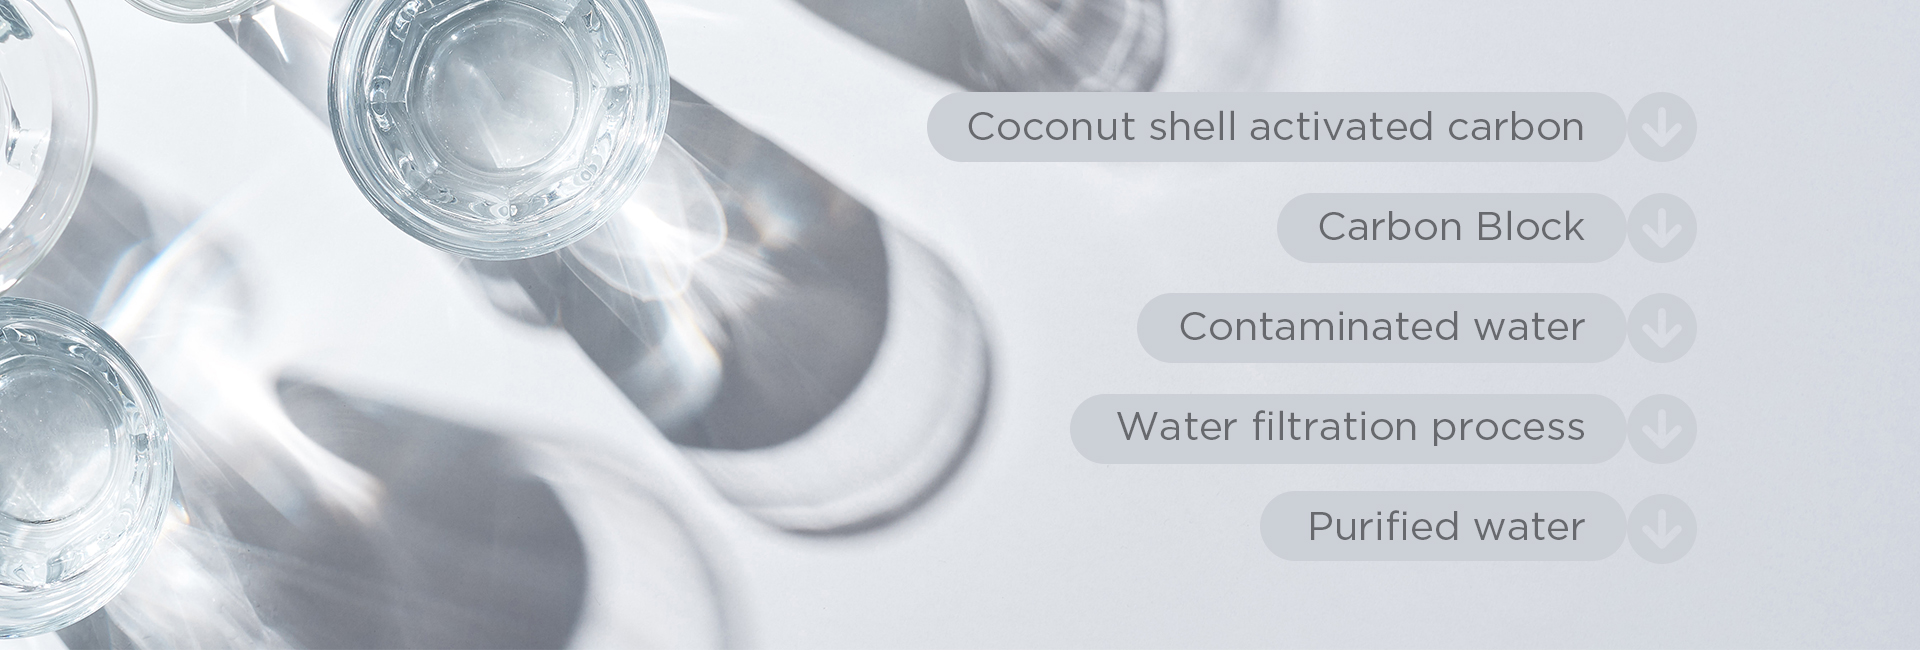 water filtering process